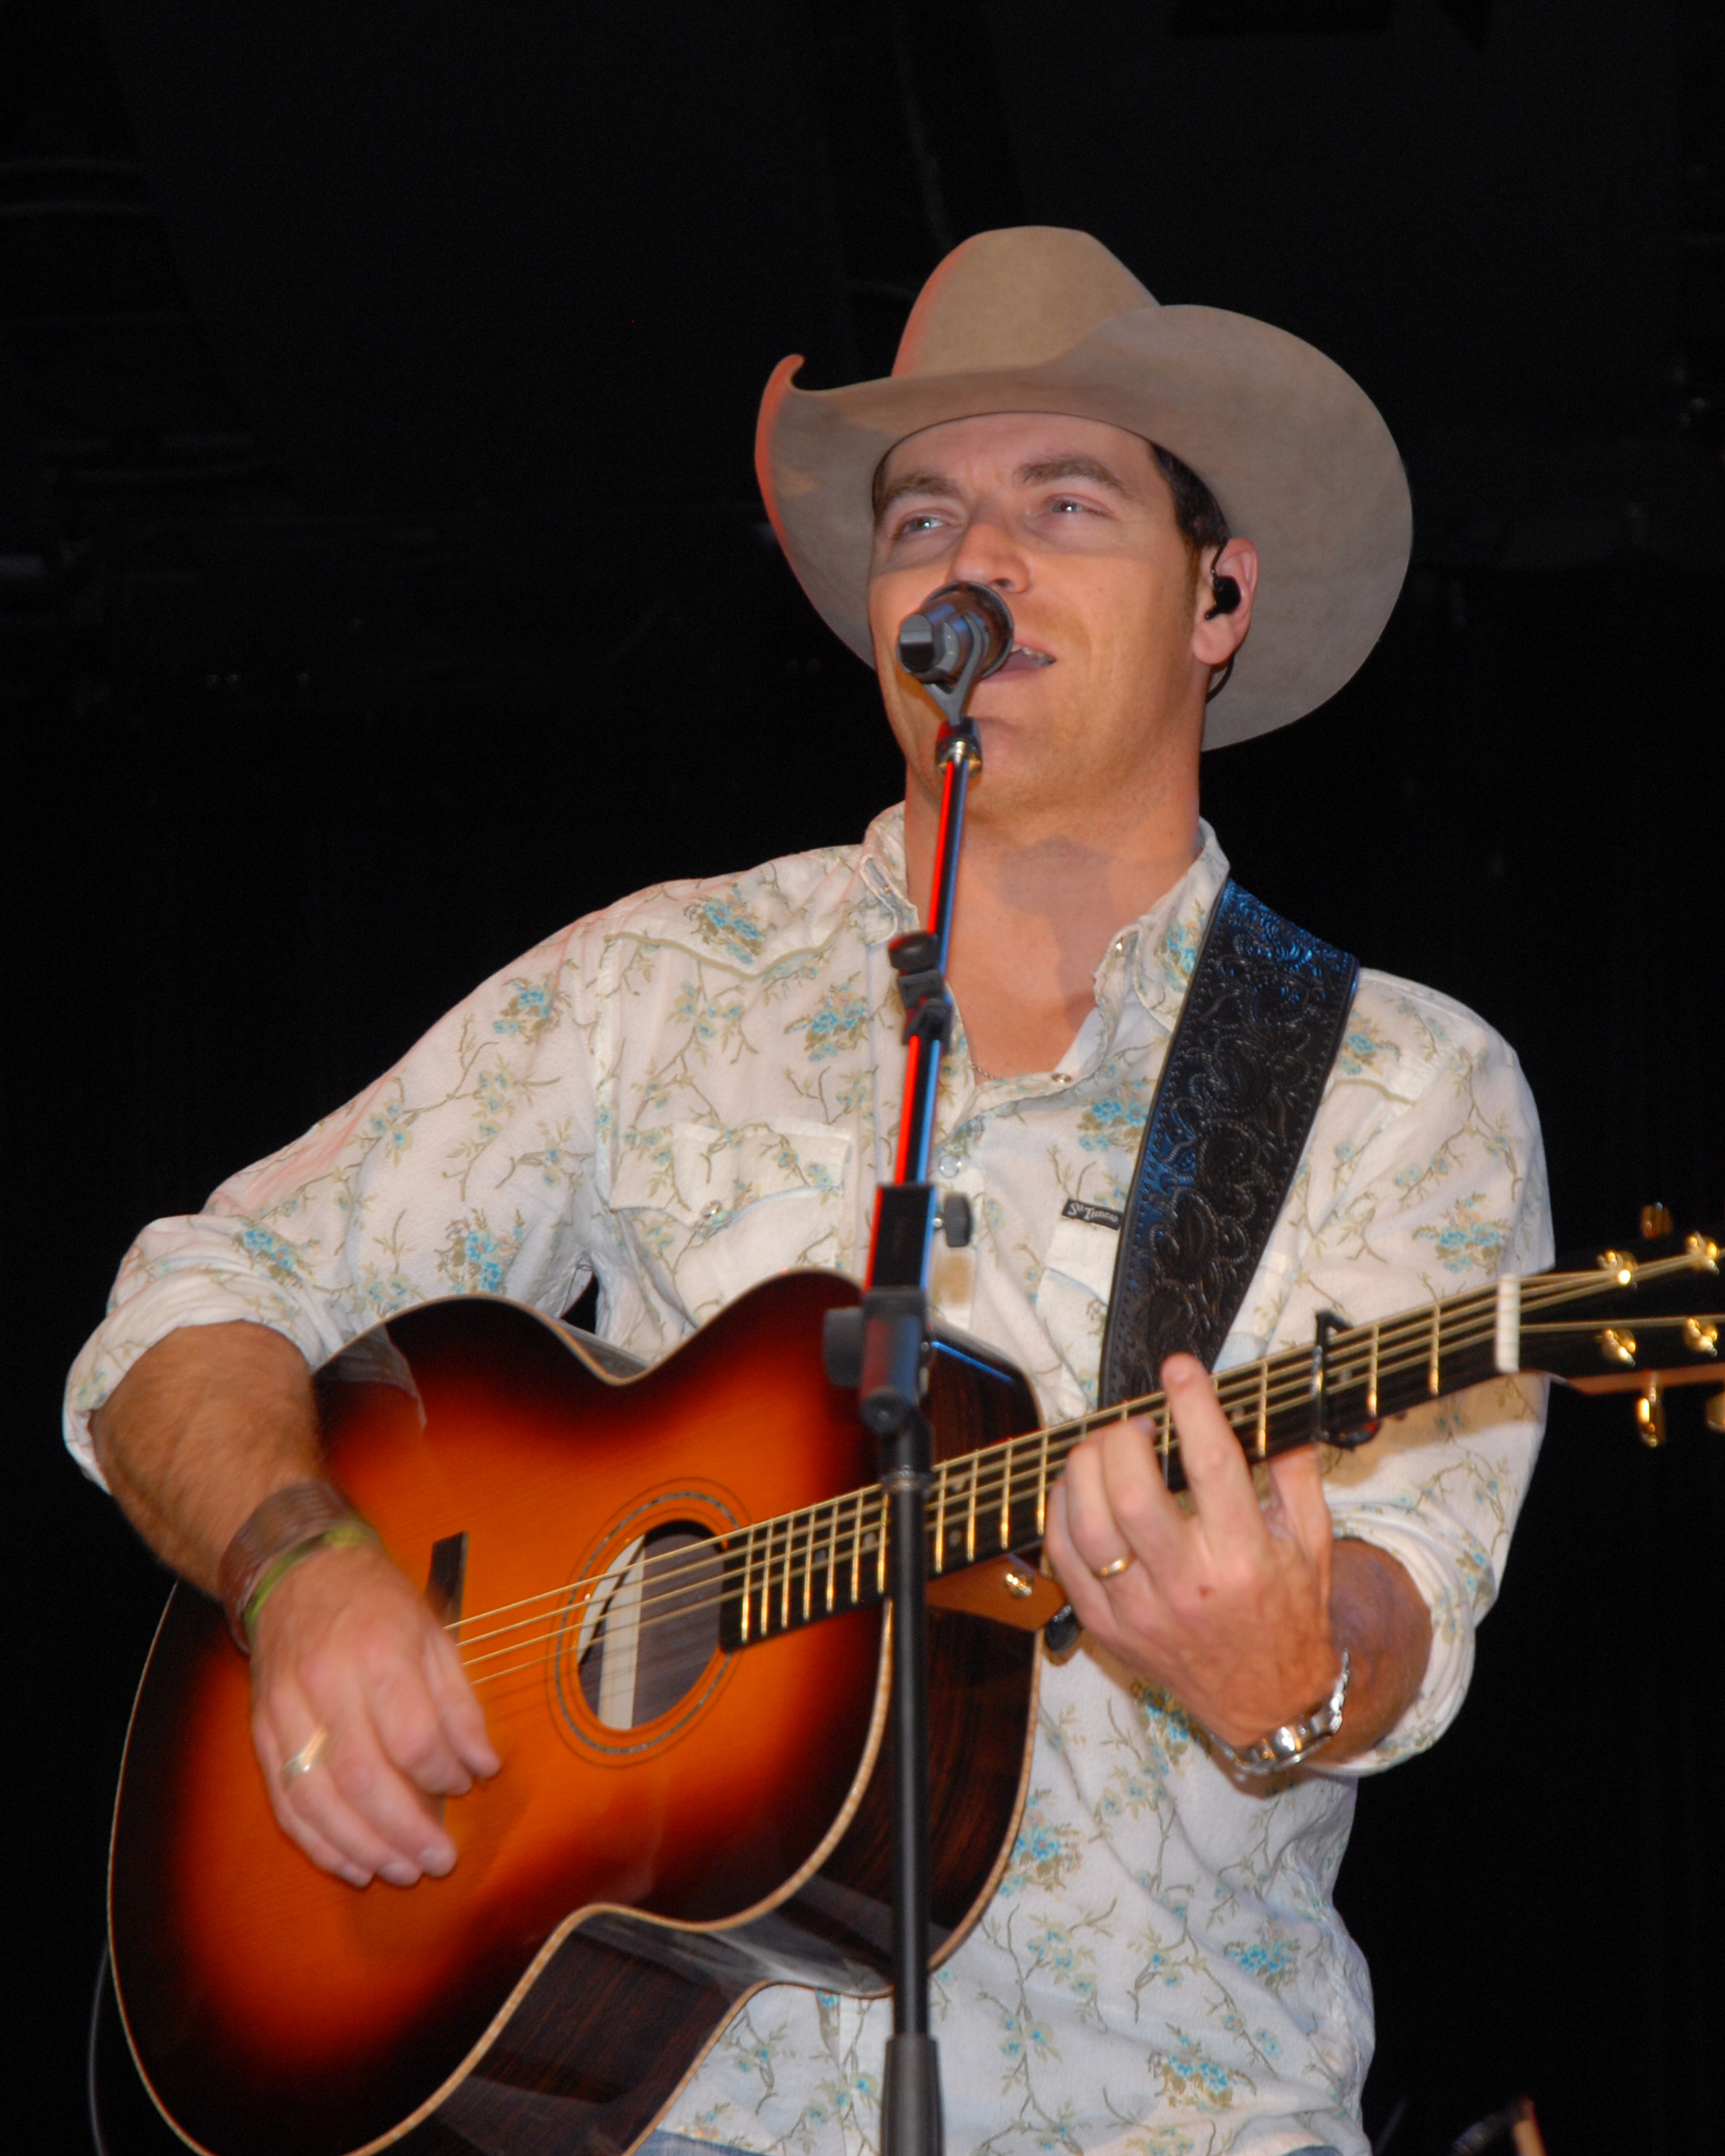 George Canyon - October 2, 2007